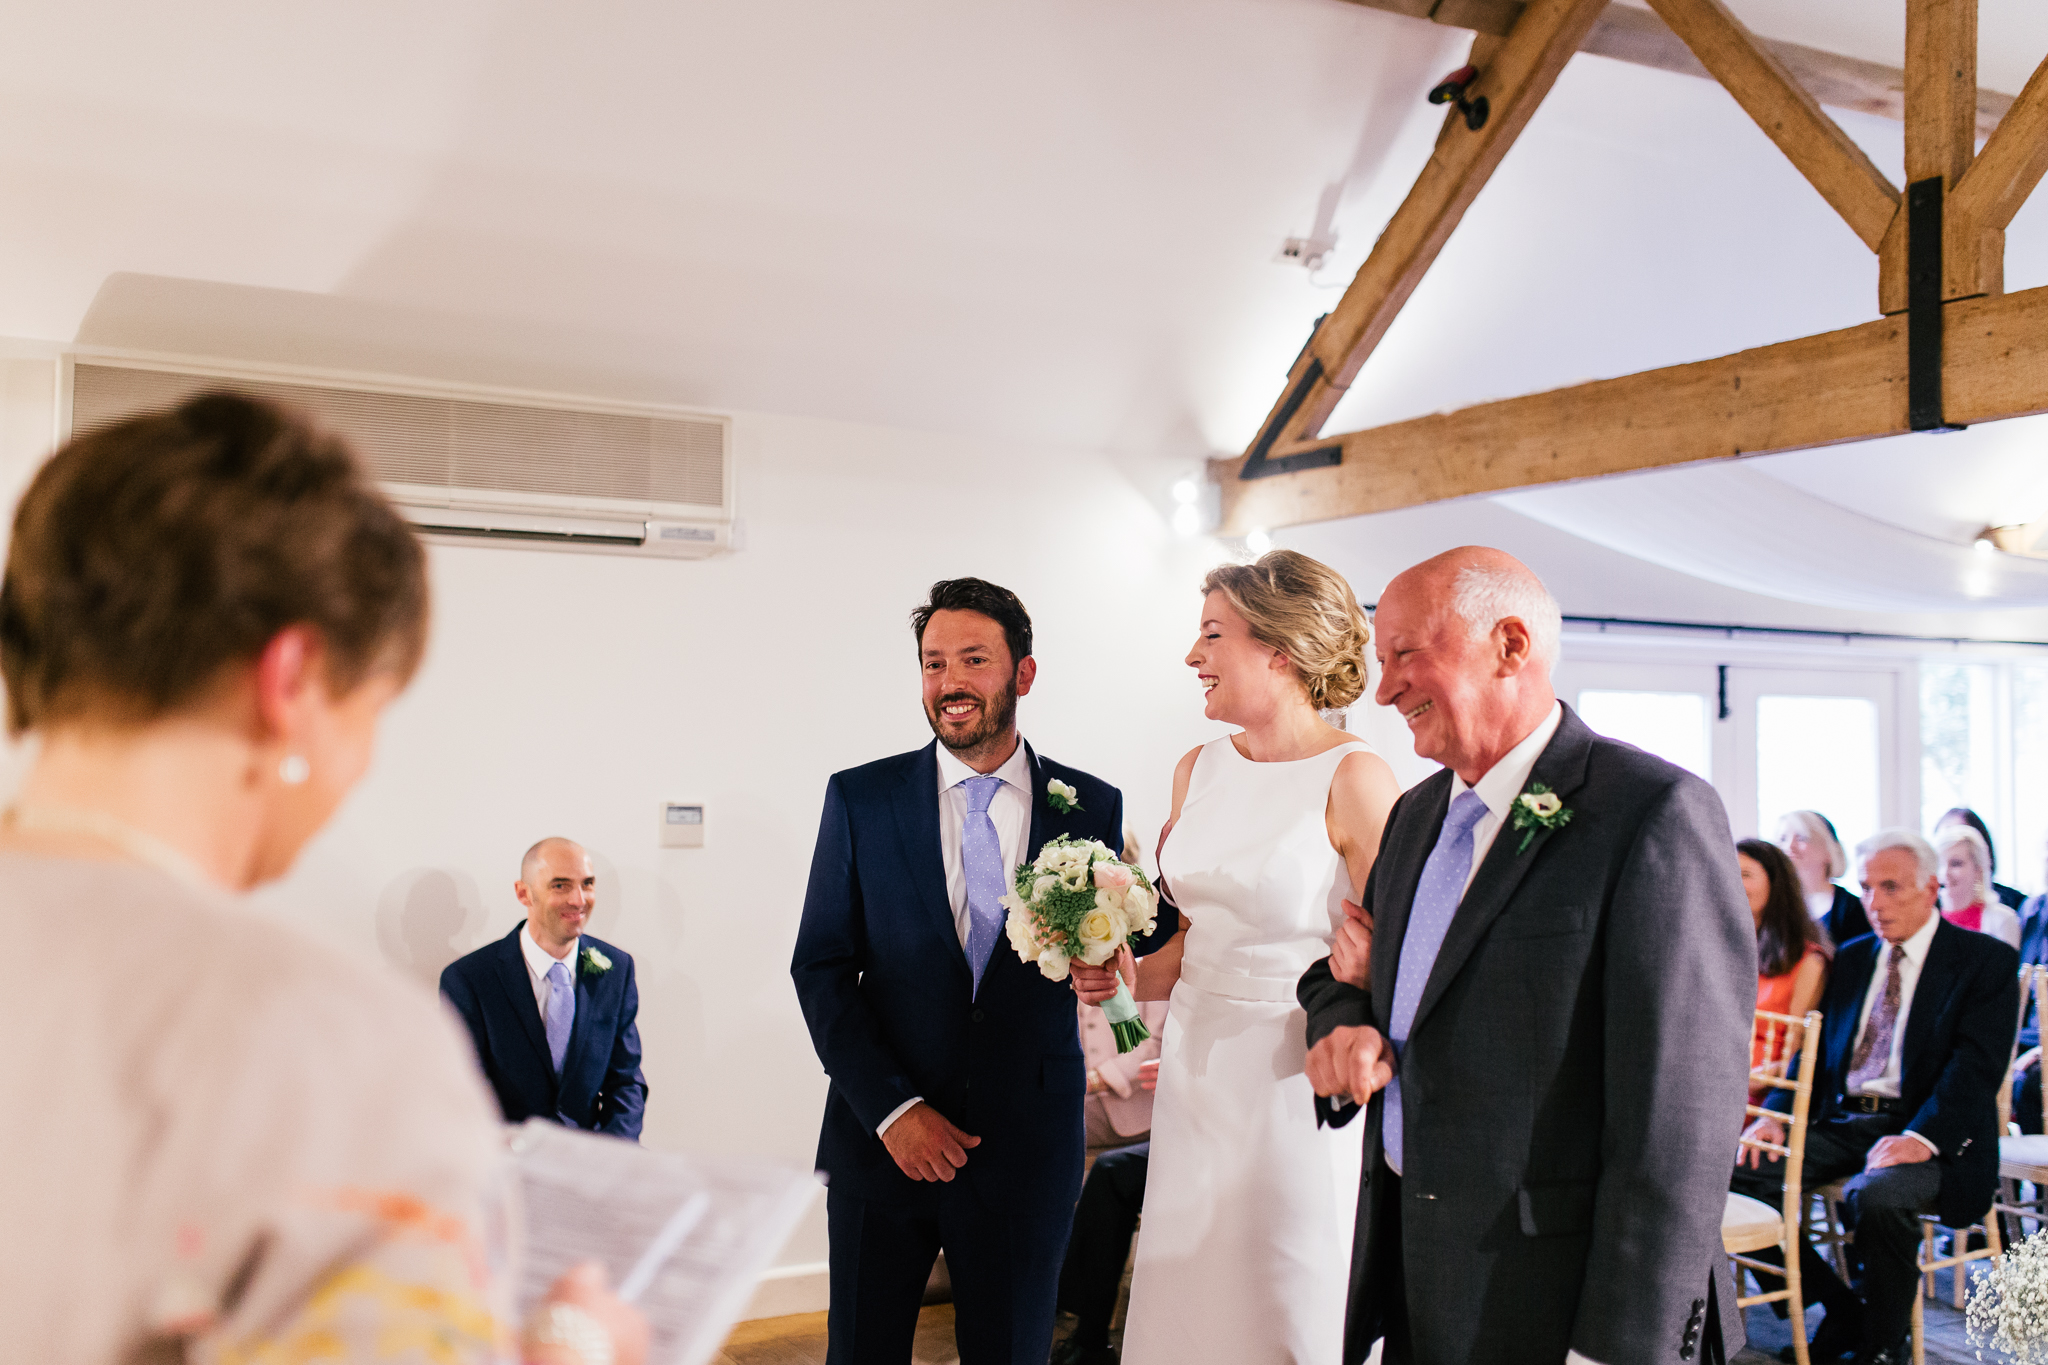 Farbridge Barn Wedding Creative Alternative Photo Chichester Joanna Nicole Photography (28 of 133).jpg